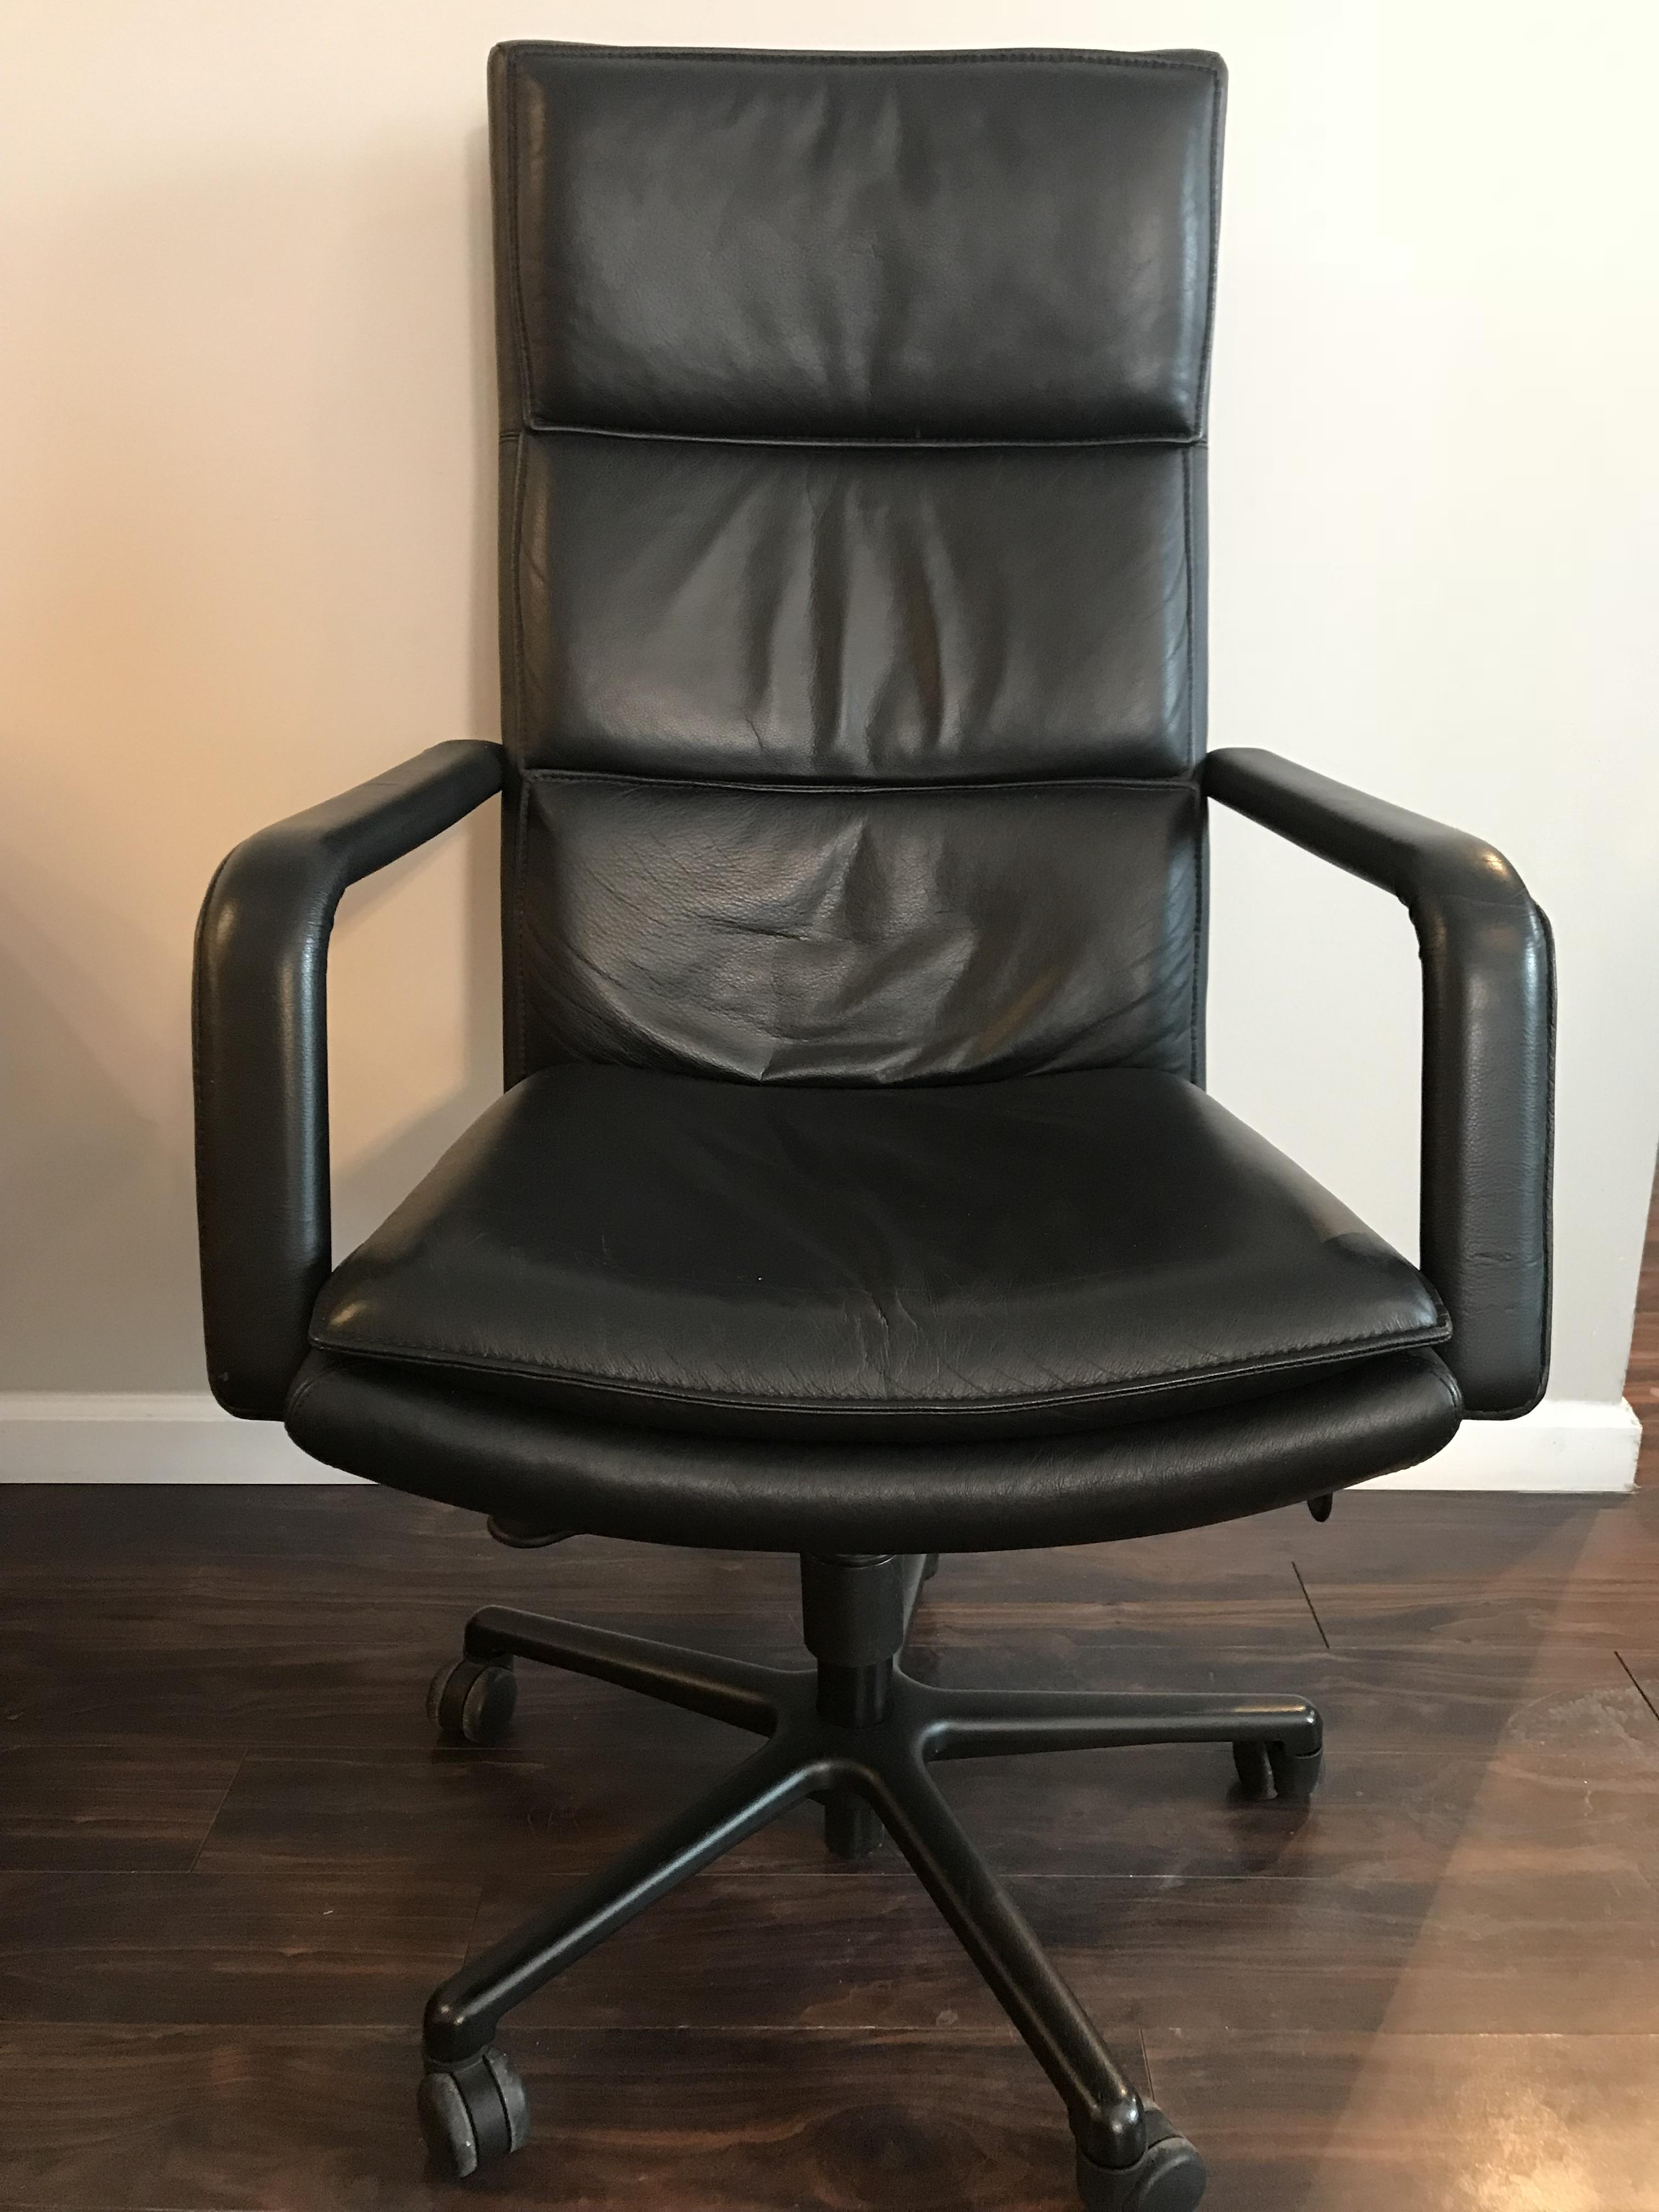 Pleasing Keilhauer Conference Chairs Caraccident5 Cool Chair Designs And Ideas Caraccident5Info